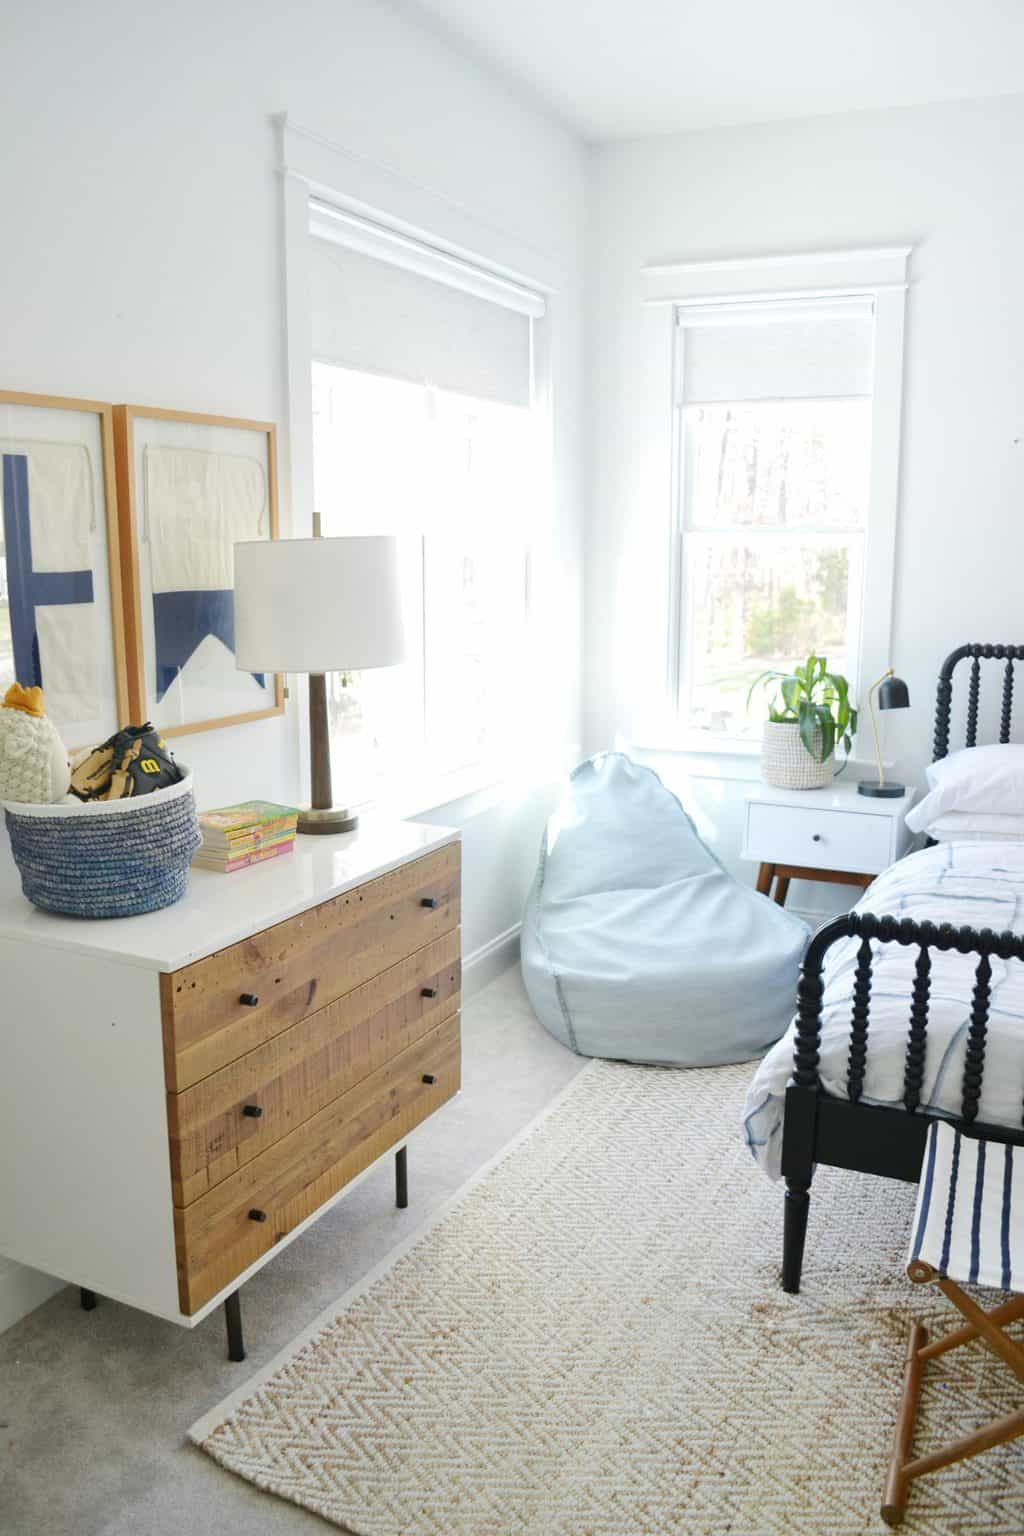 a corner of a bedroom with a dresser, a basket of toys and a bean bag chair